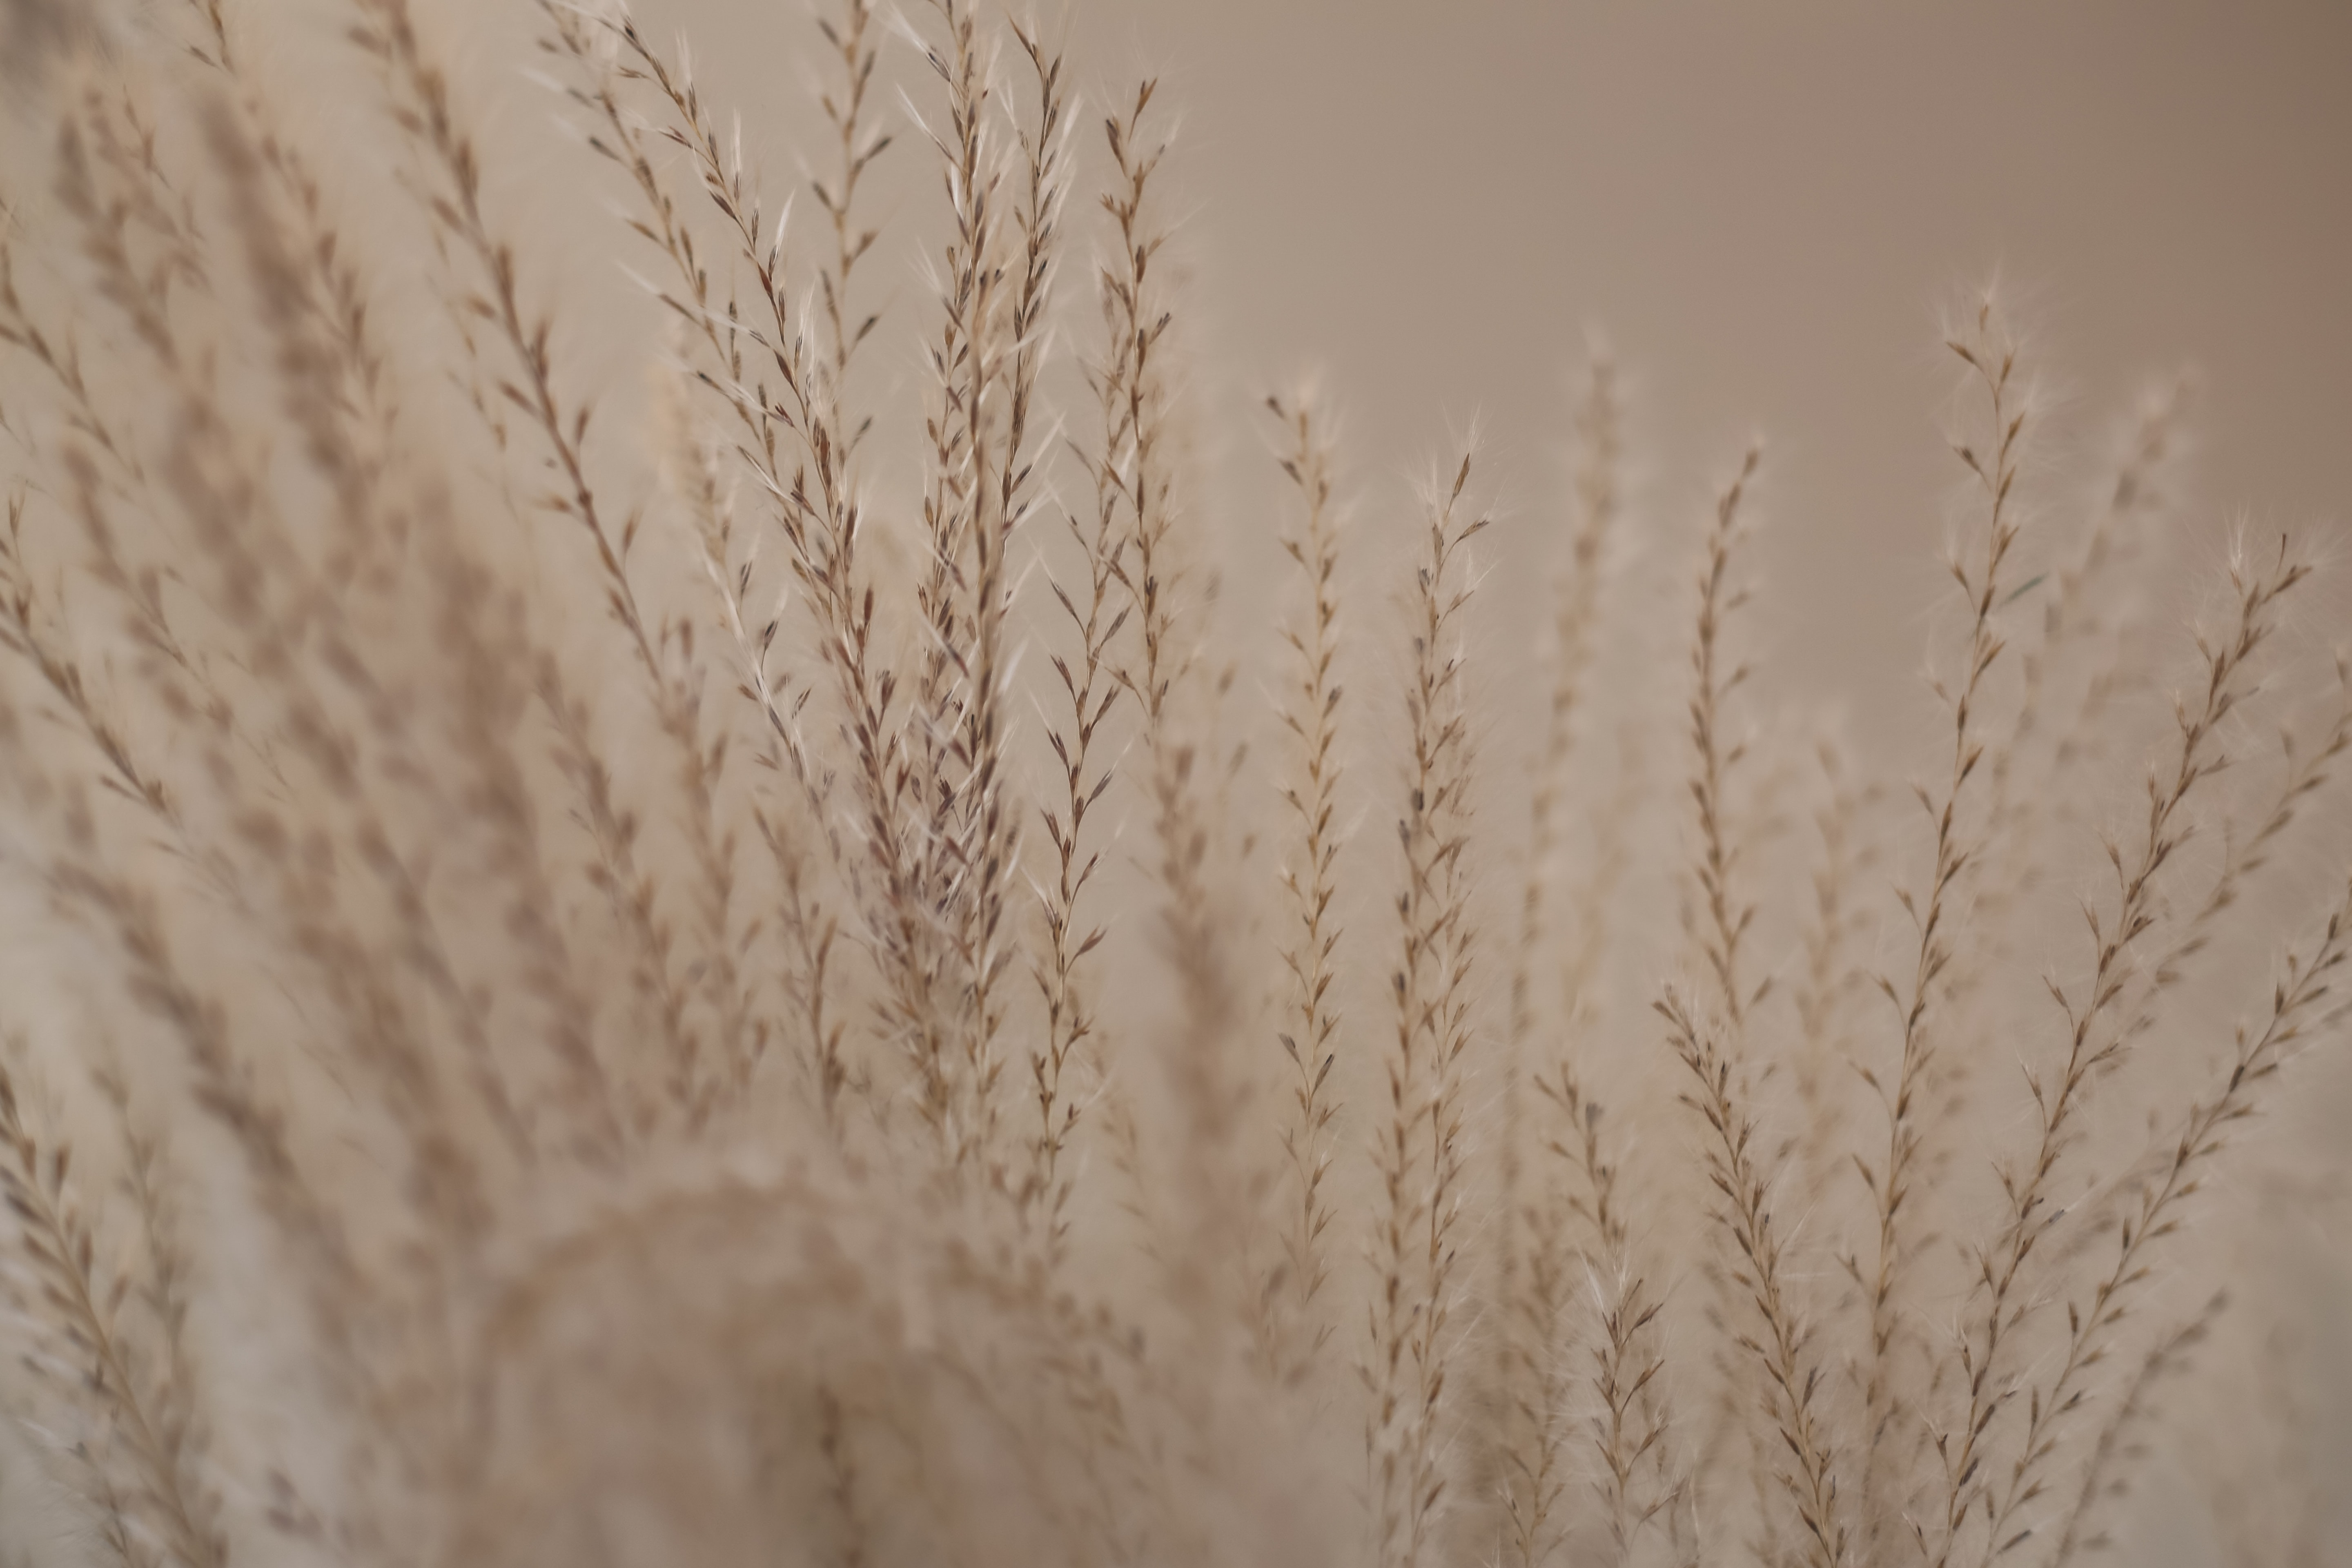 shallow focus photography of brown plants